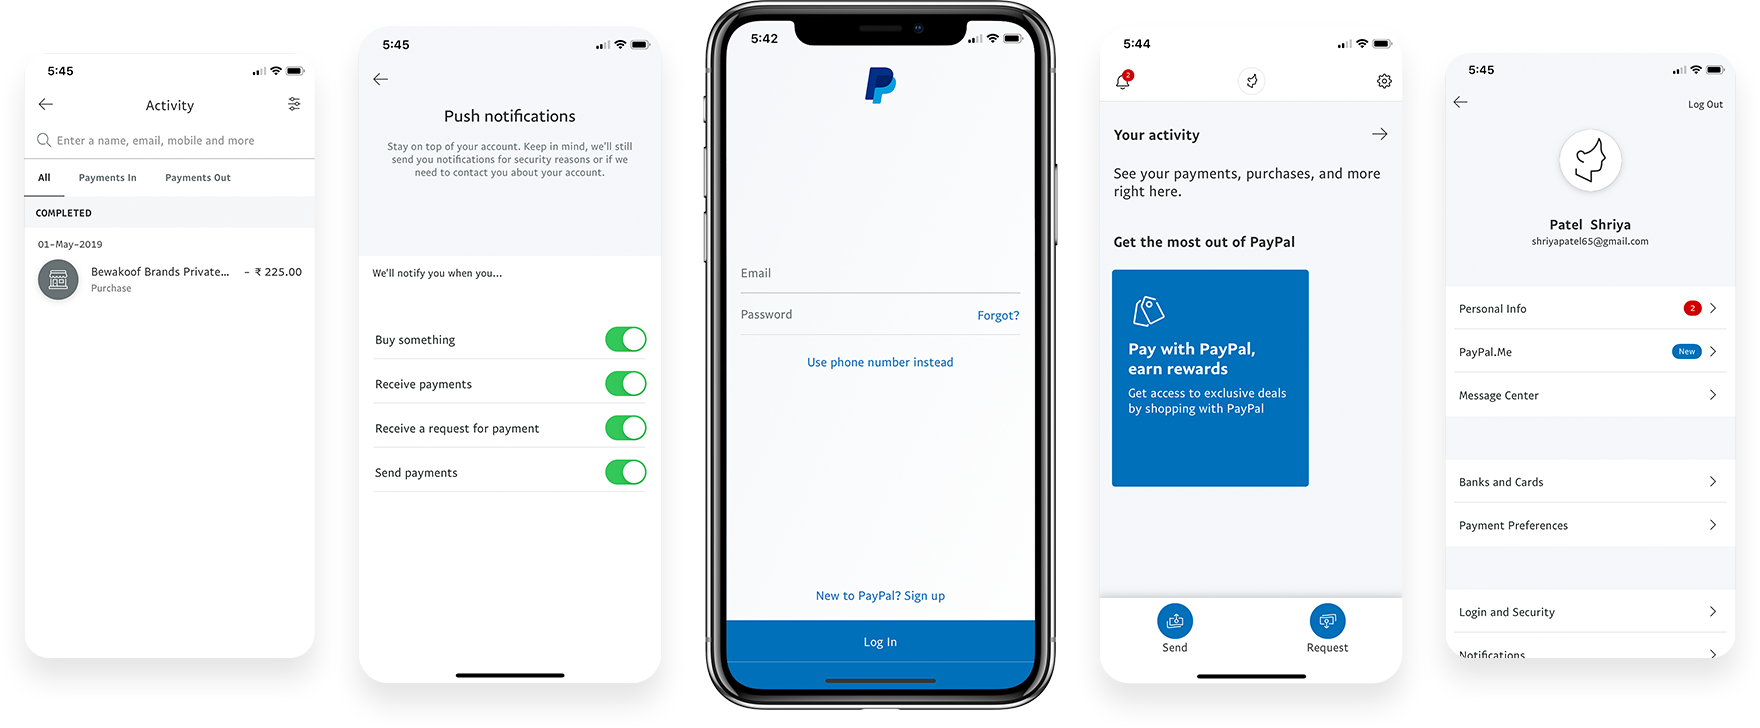 Screenshots of the PayPal App